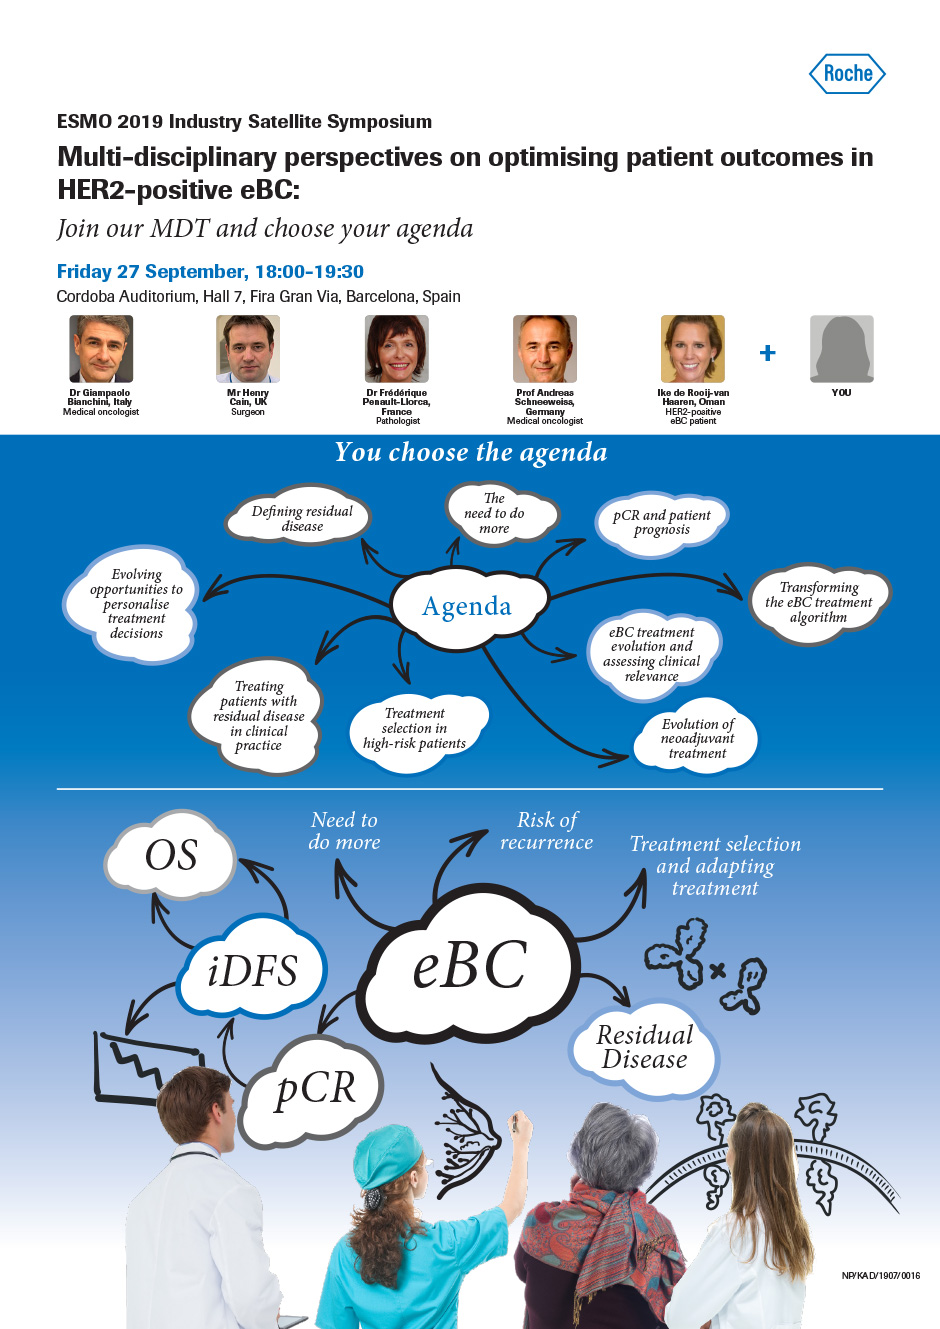 02-Multi-Disciplinary-Perspectives-on-Optimising-Patient-Outcomes-in-HER2-Positive-eBC-ROCHE